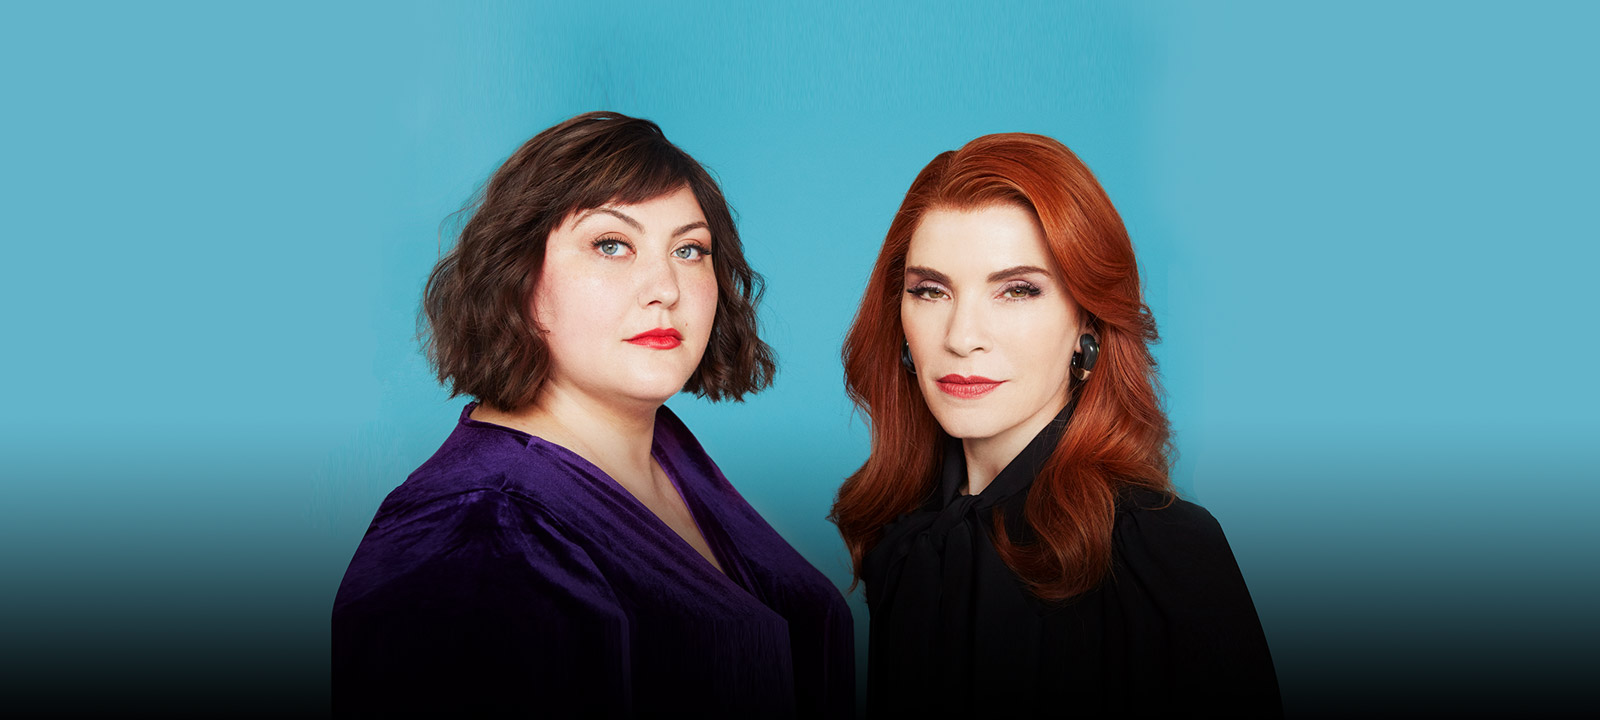 dietland-season-1-plum-nash-kitty-margulies-800×600